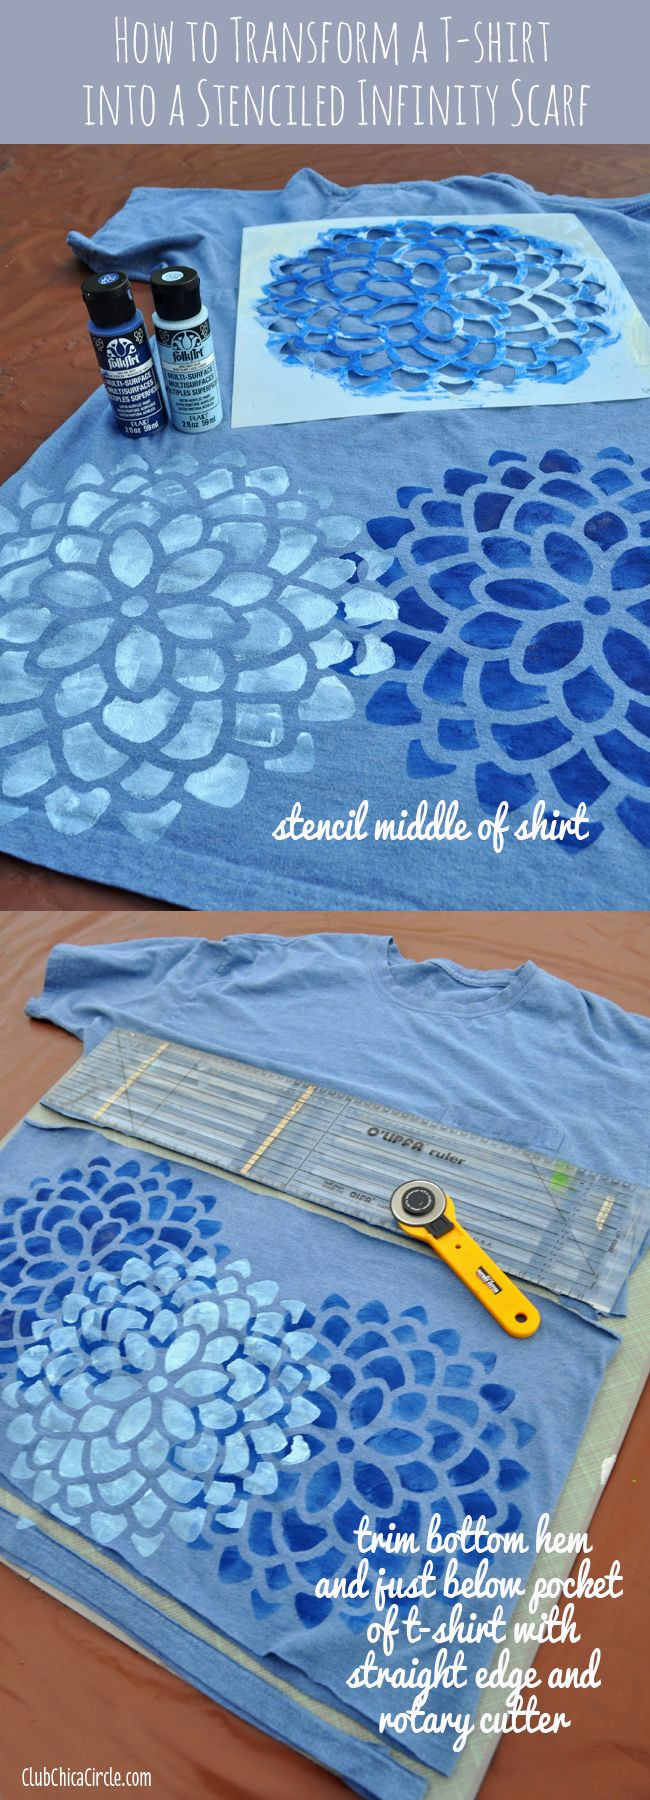 Tee Shirt Peinture Meilleur De How to Turn A T Shirt Into A Cool Stenciled Infinity Scarf so Easy Galerie